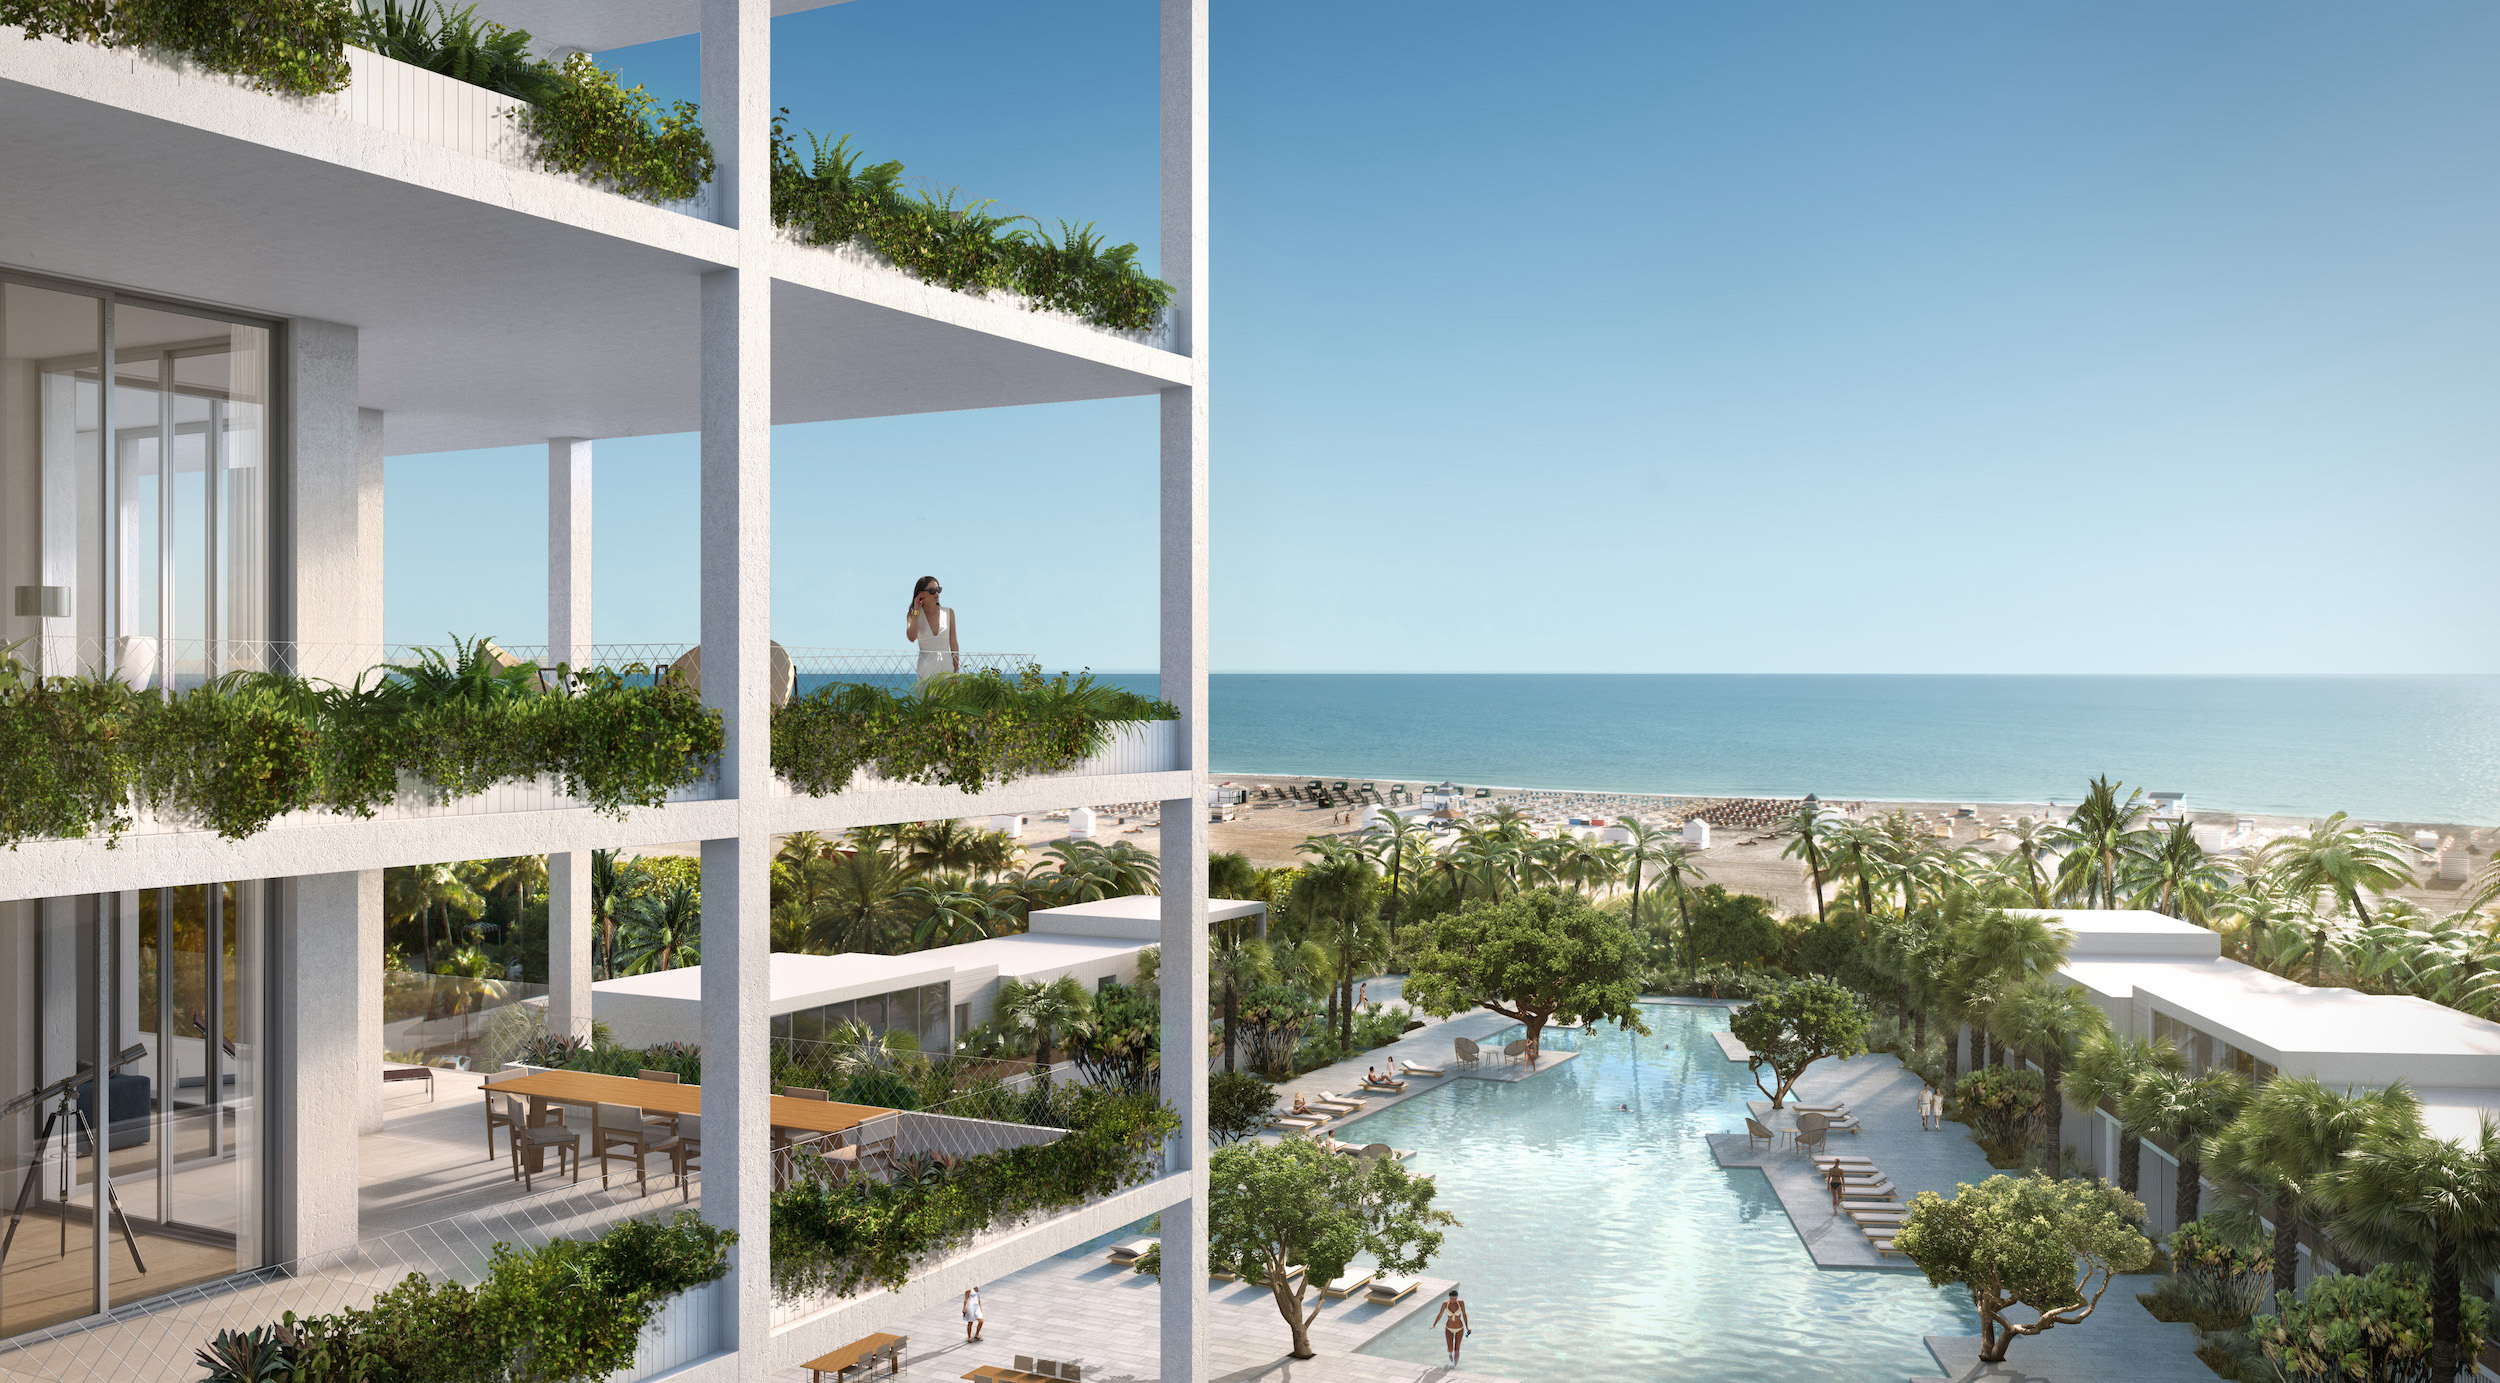 South florida renderings elysee rendering apeiron miami for The balcony hotel